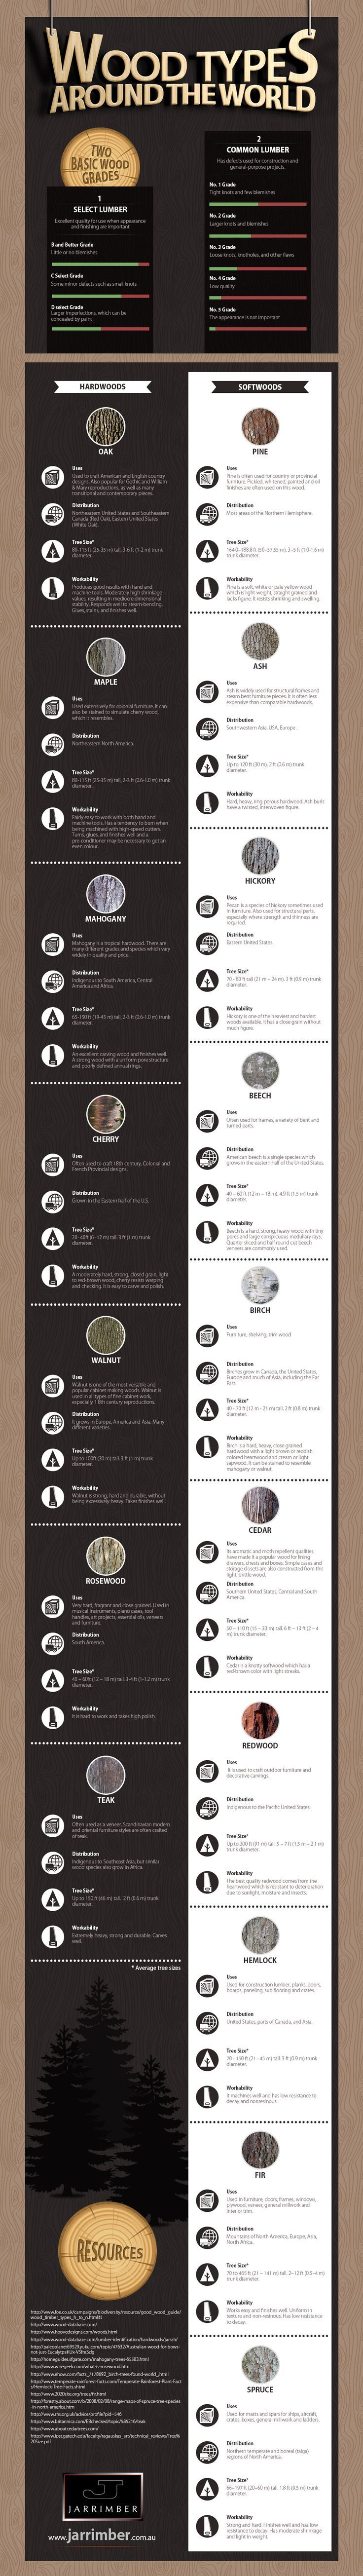 Todd Smith, owner of the Western Australian furniture company, Jarrimber, created this very useful infographic, which showcases the use, distribution, tree size and workability of 17 wood species.: